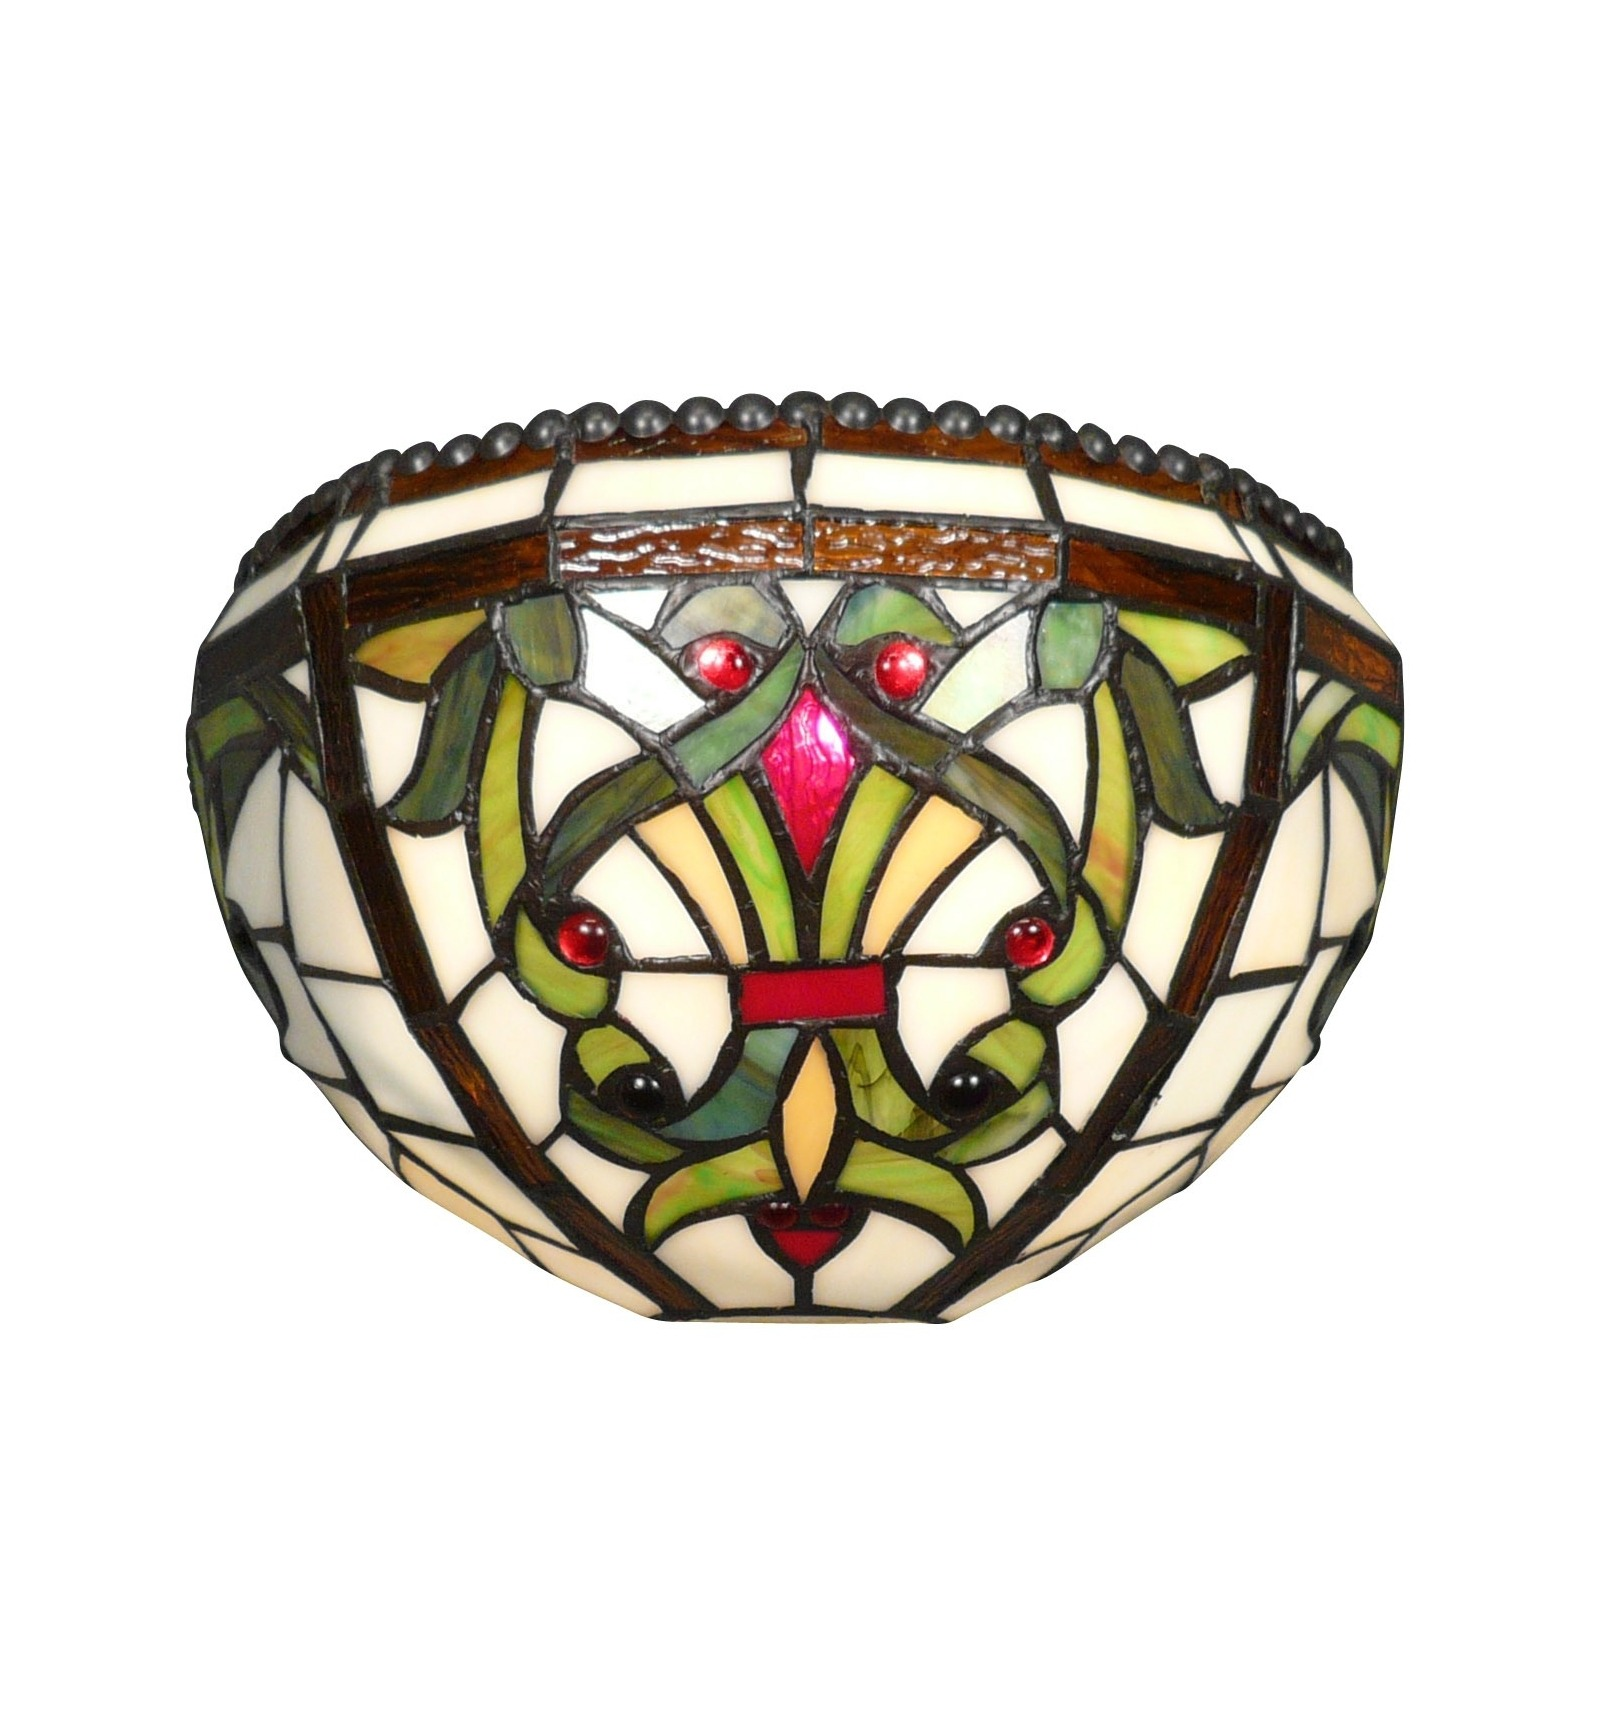 wall sconce tiffany baroque lamp. Black Bedroom Furniture Sets. Home Design Ideas